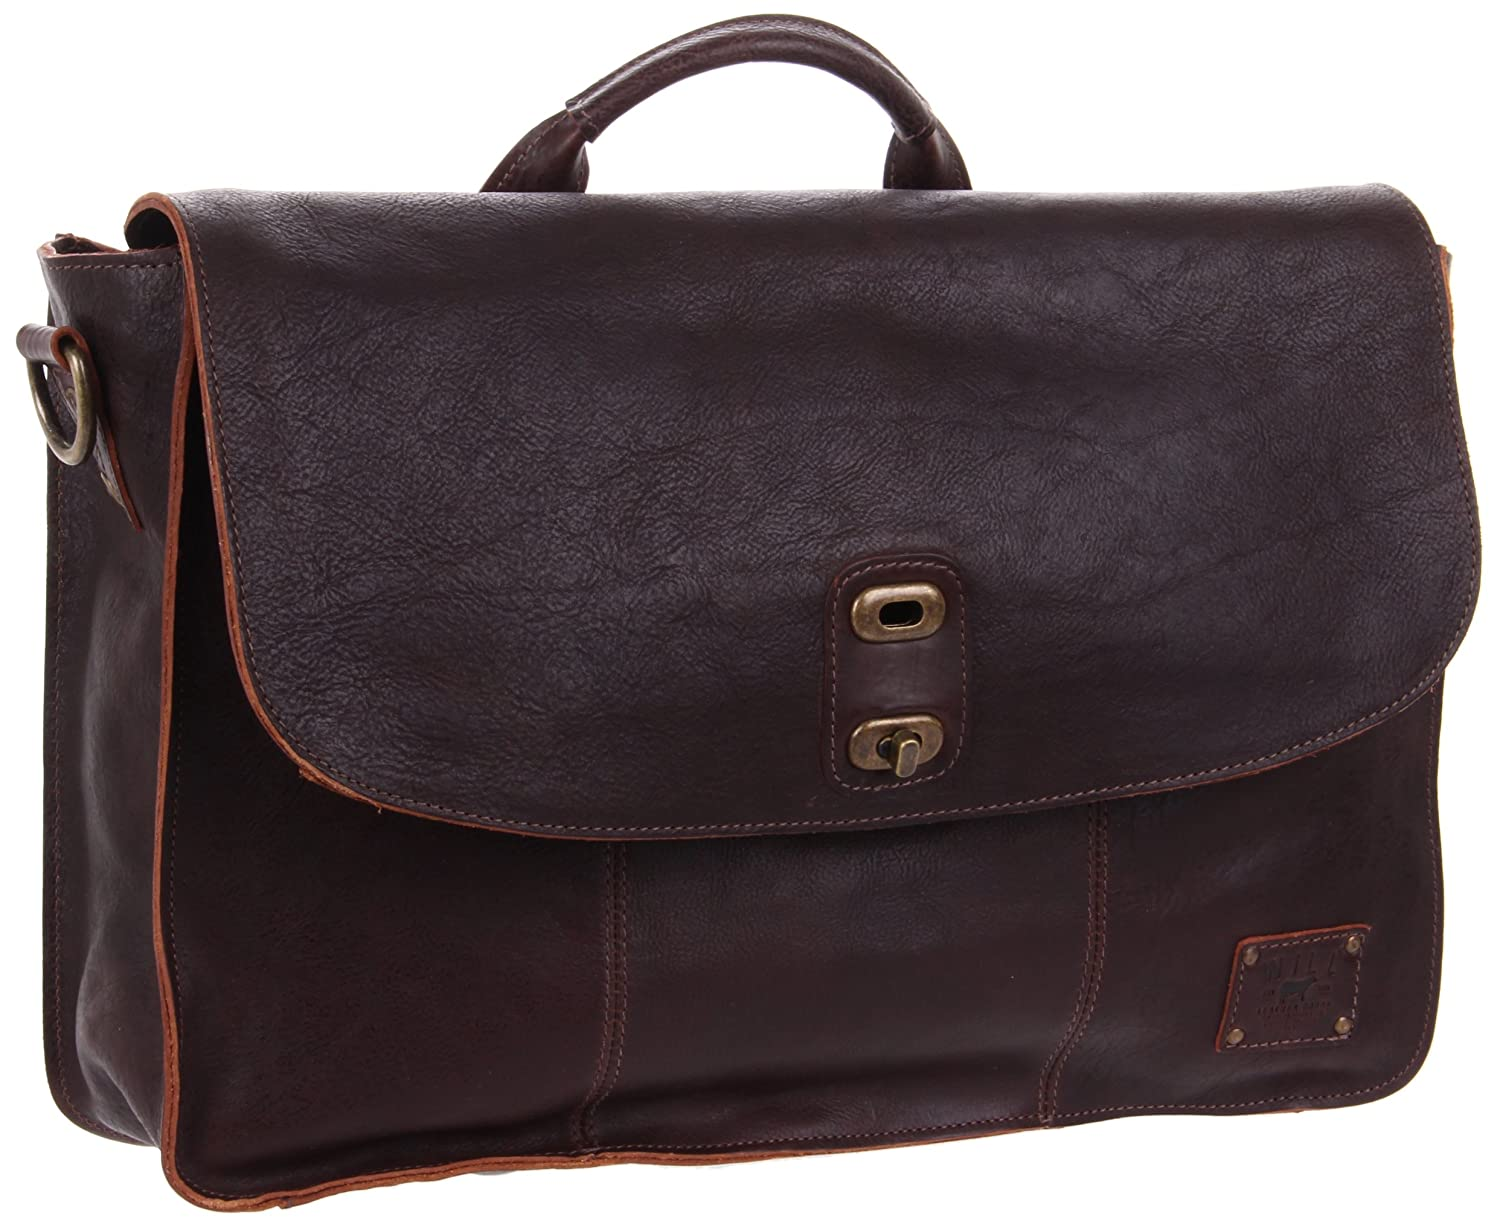 Will Leather Goods LUGGAGE メンズ One Size ブラウン B007T4NQZG